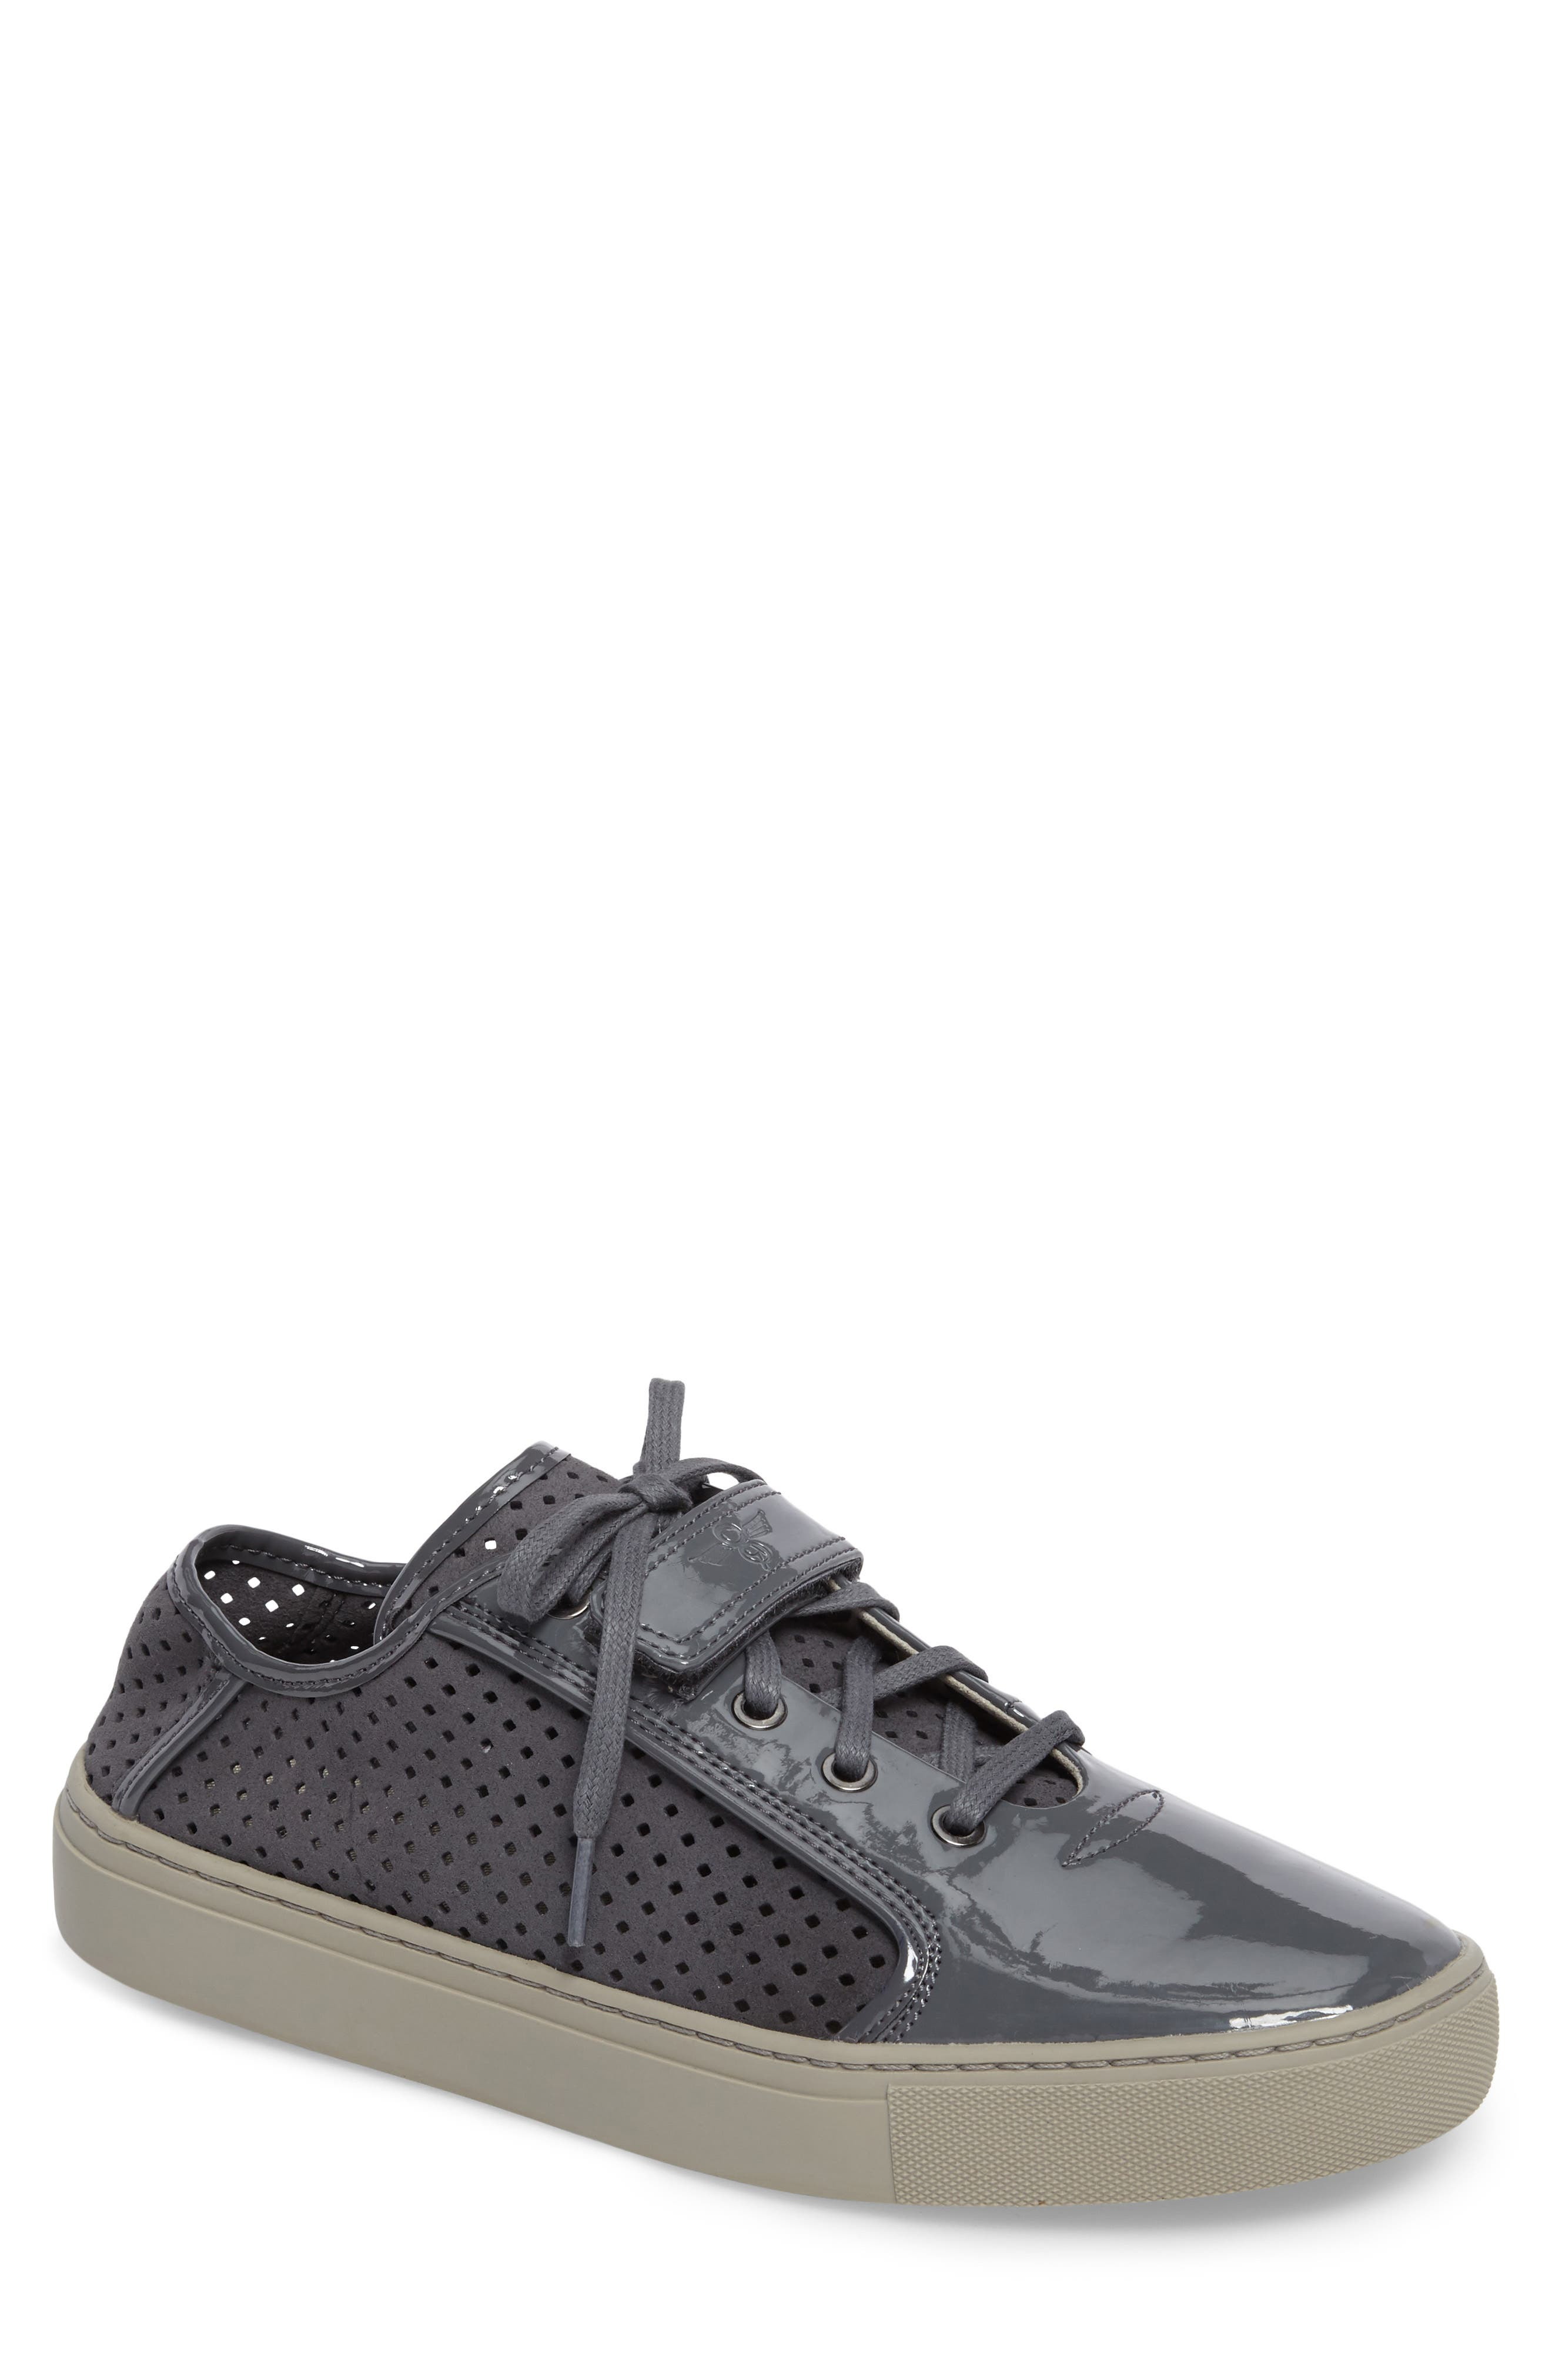 Creative Recreation Pagno Sneaker (Men)